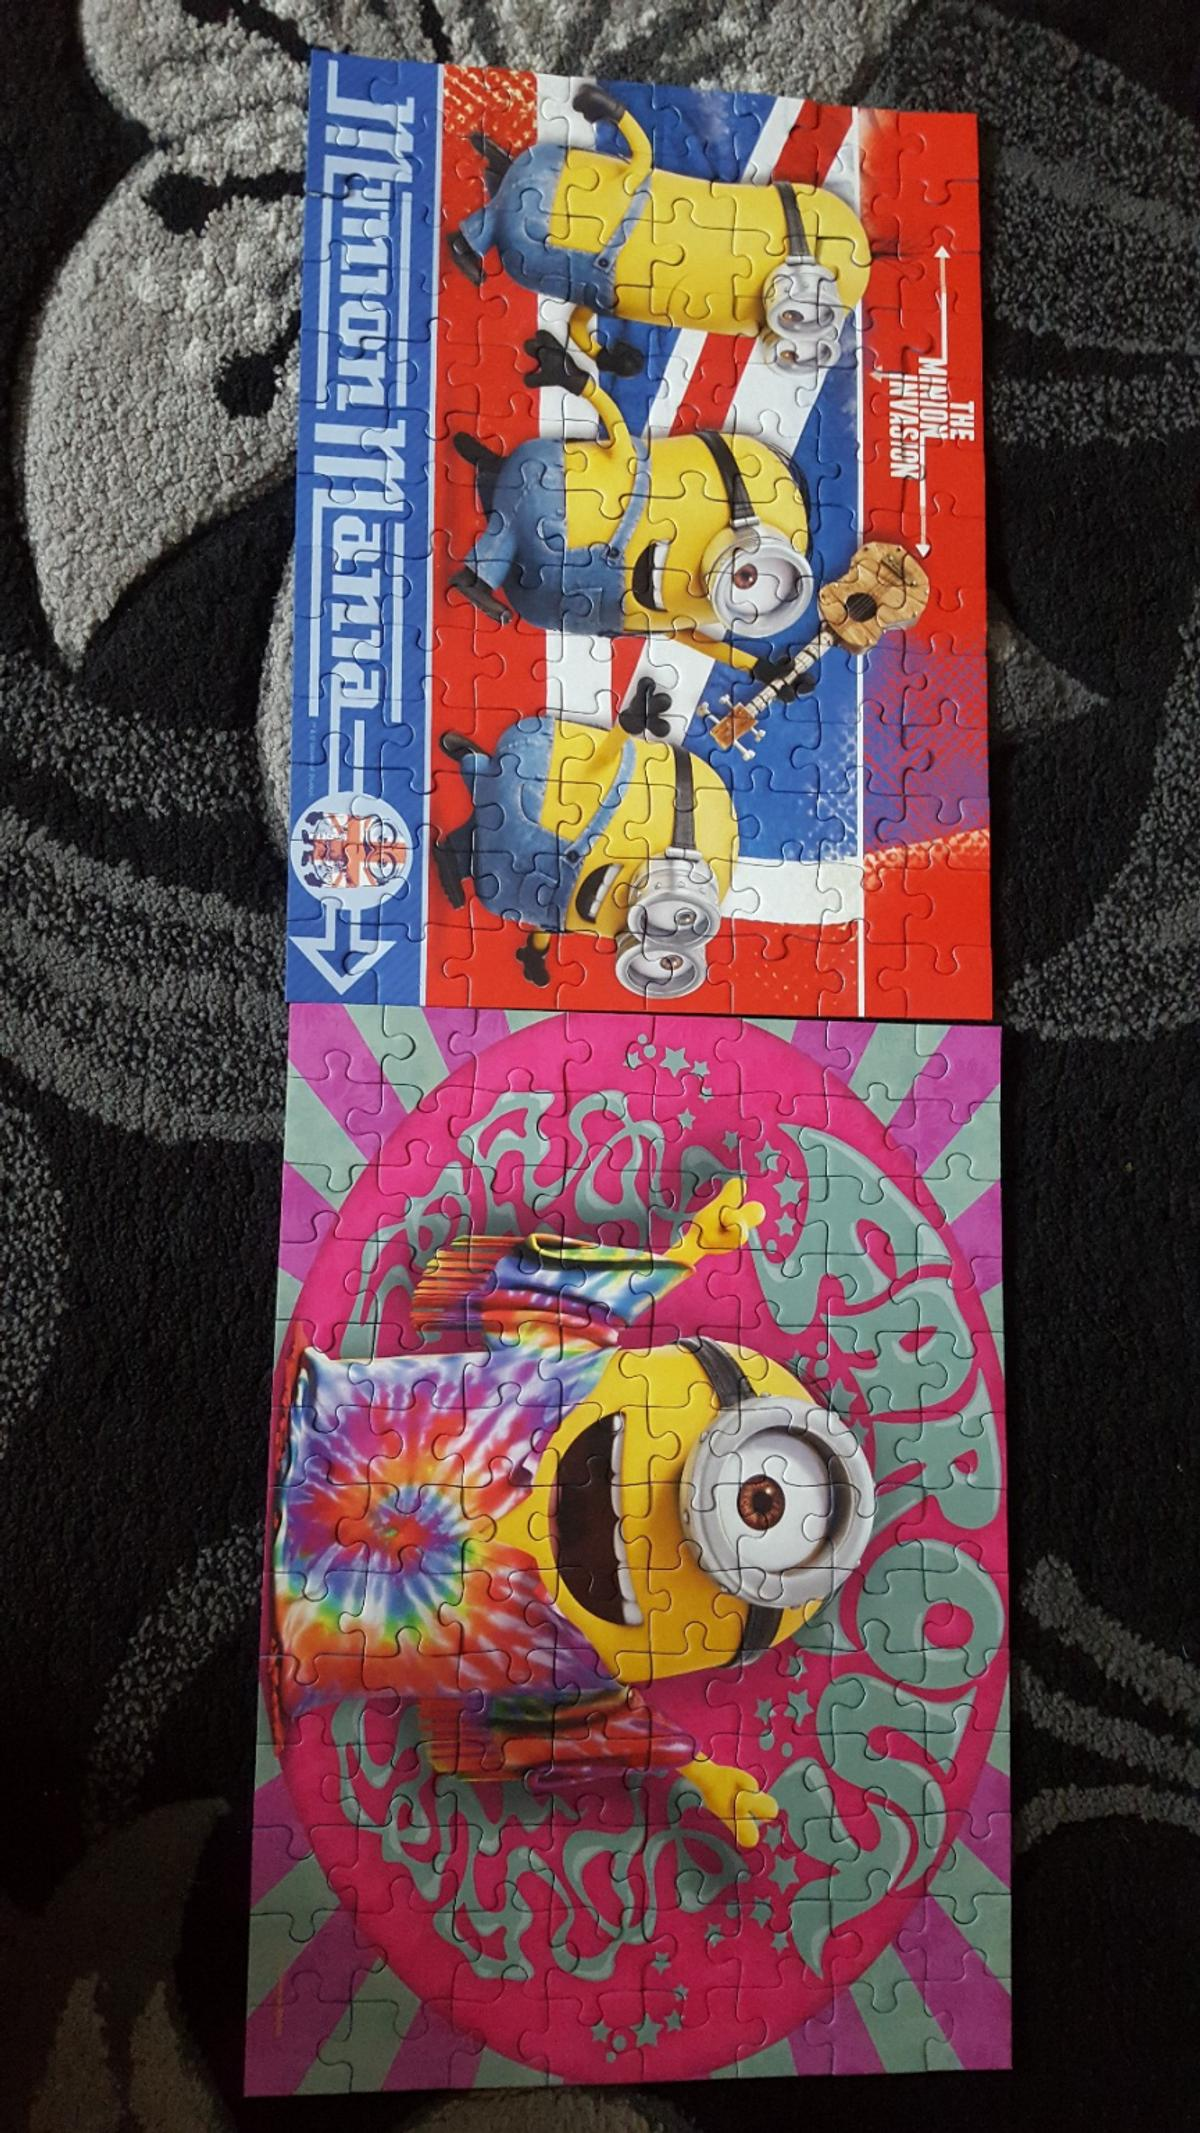 Minions 4x Jigsaw Puzzles in NG17 Ashfield for £4 50 for